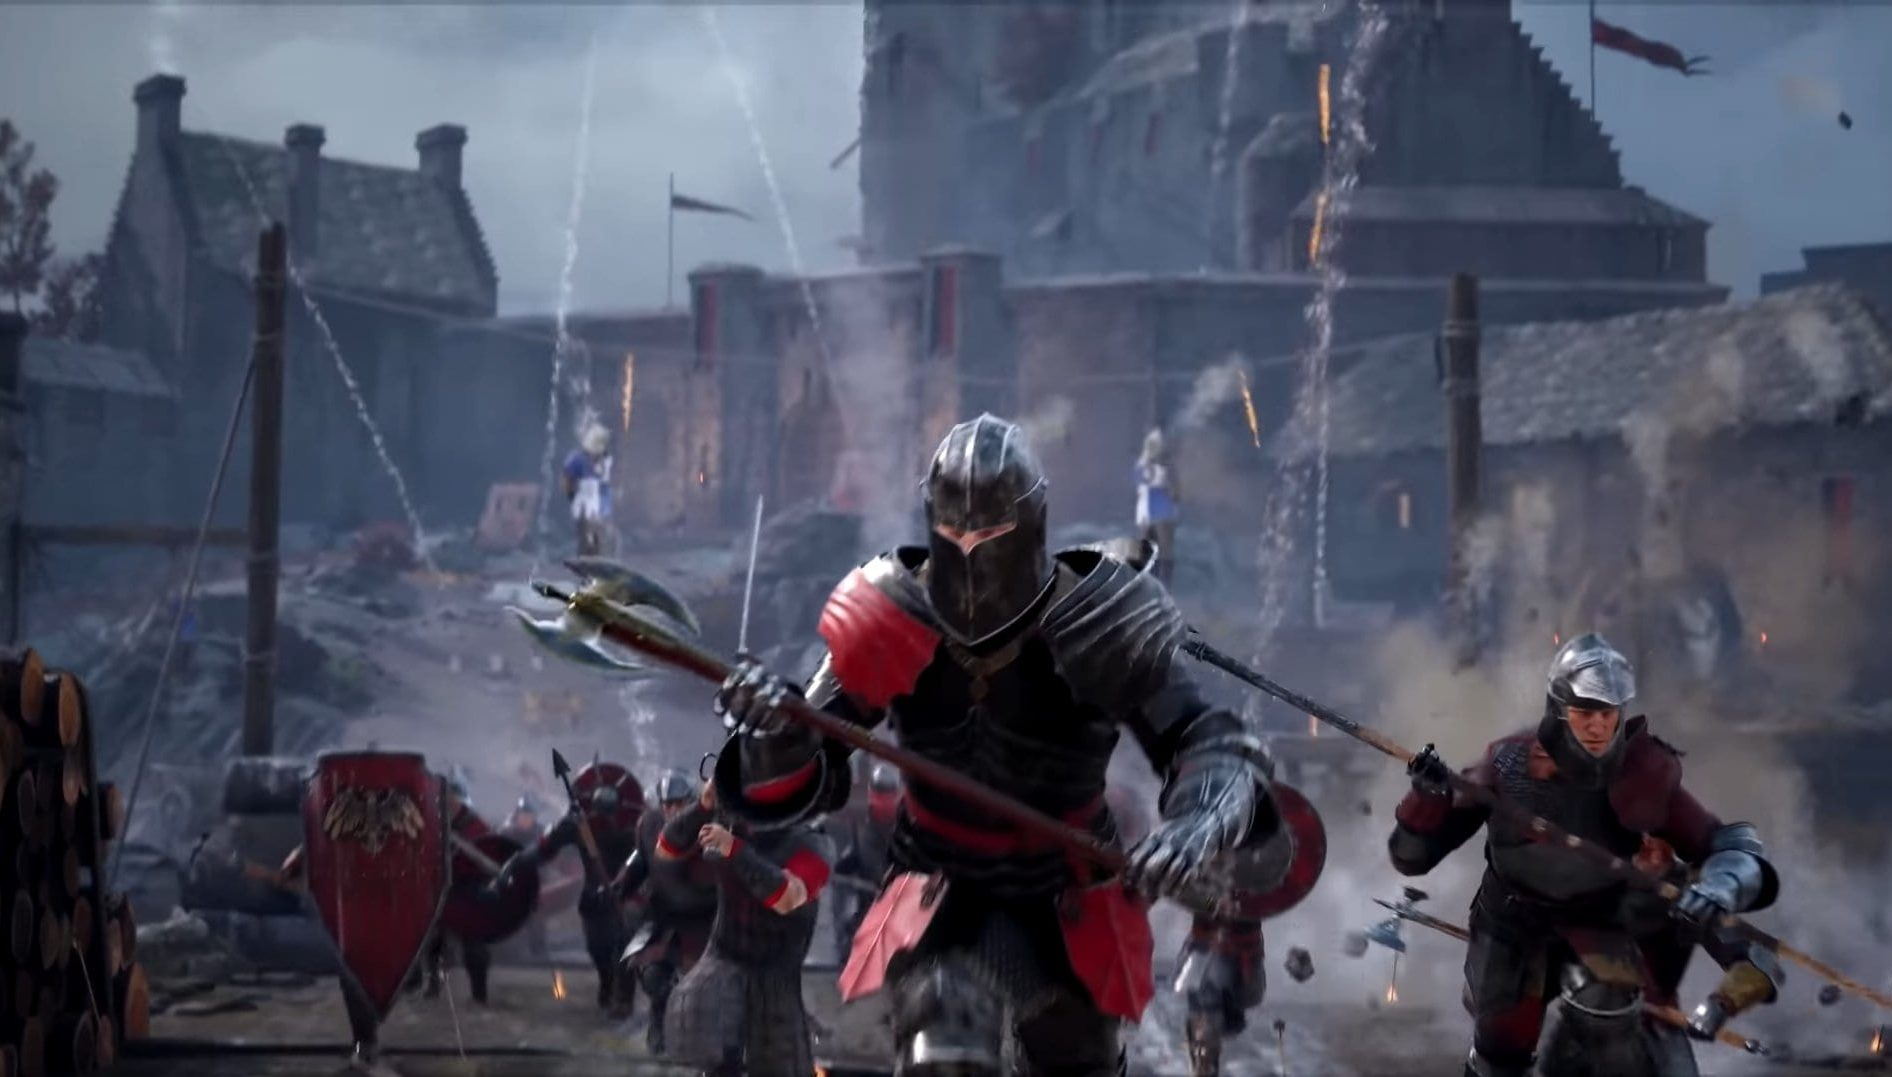 When To Expect Chivalry 2?